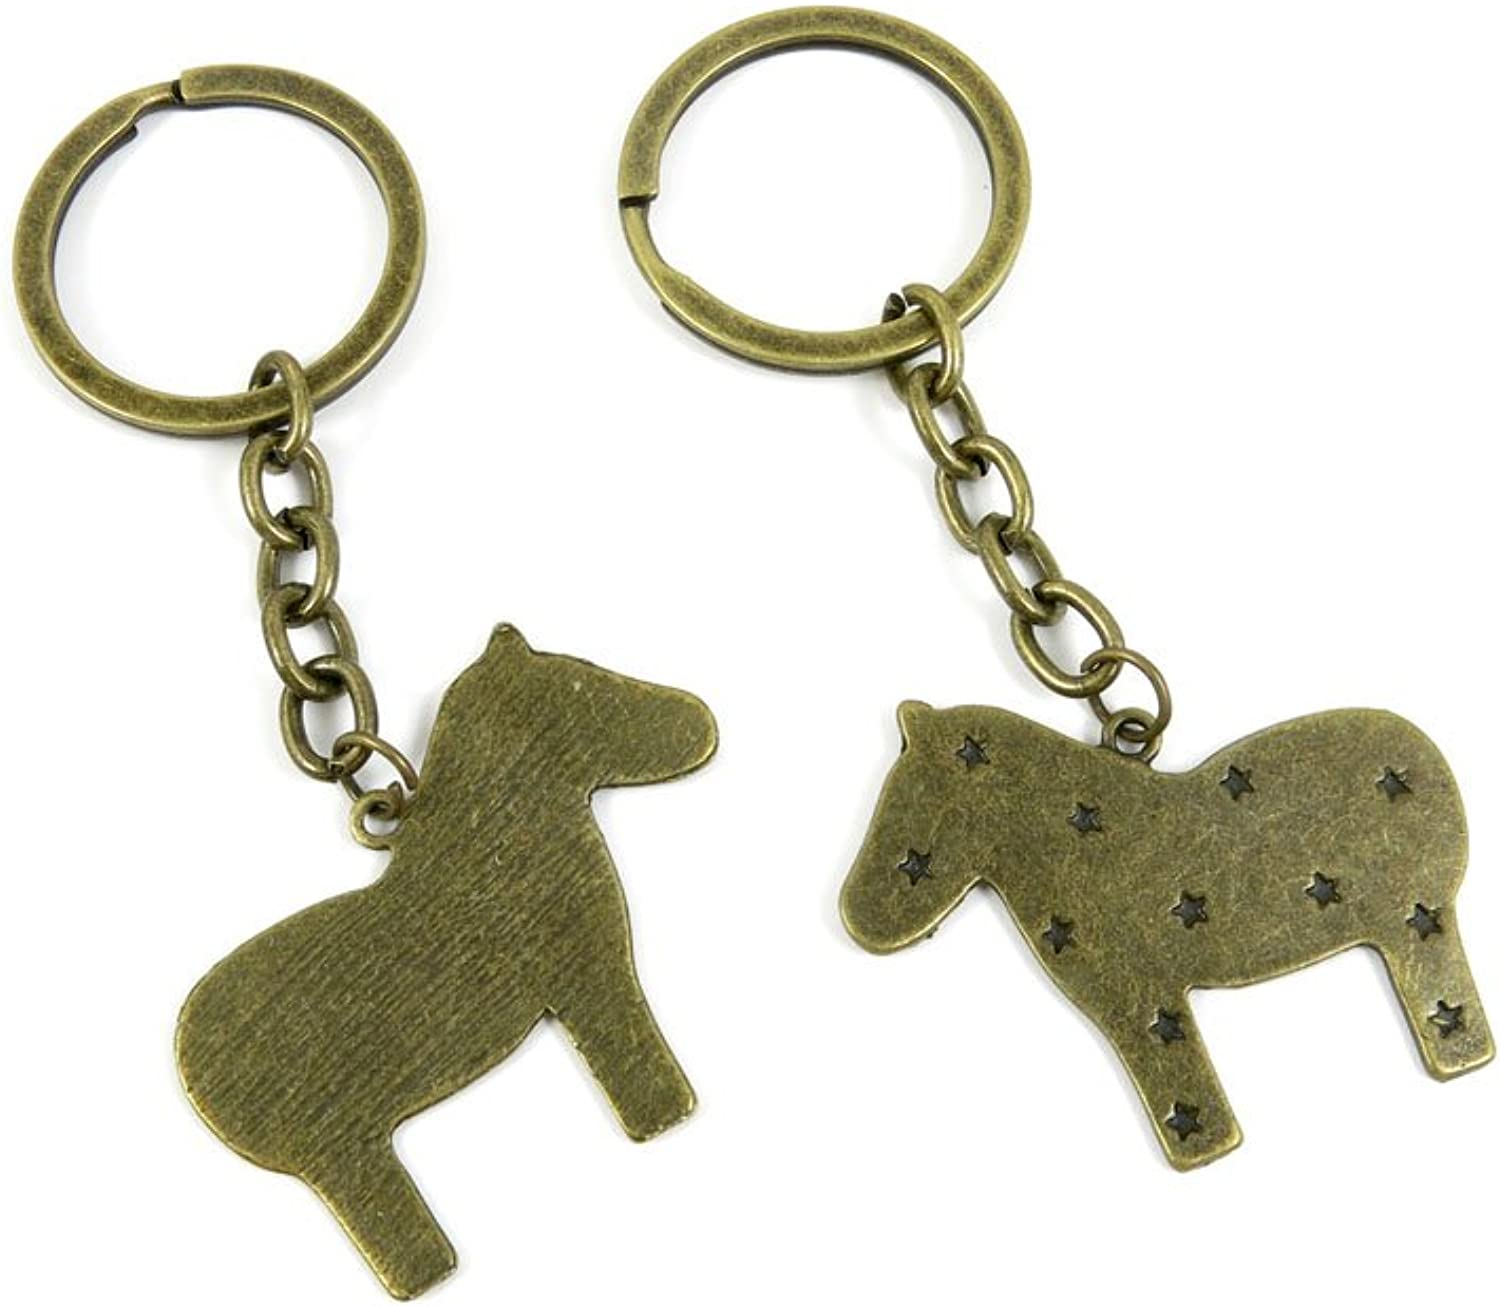 130 Pieces Fashion Jewelry Keyring Keychain Door Car Key Tag Ring Chain Supplier Supply Wholesale Bulk Lots W4LX1 Star Pony Horse